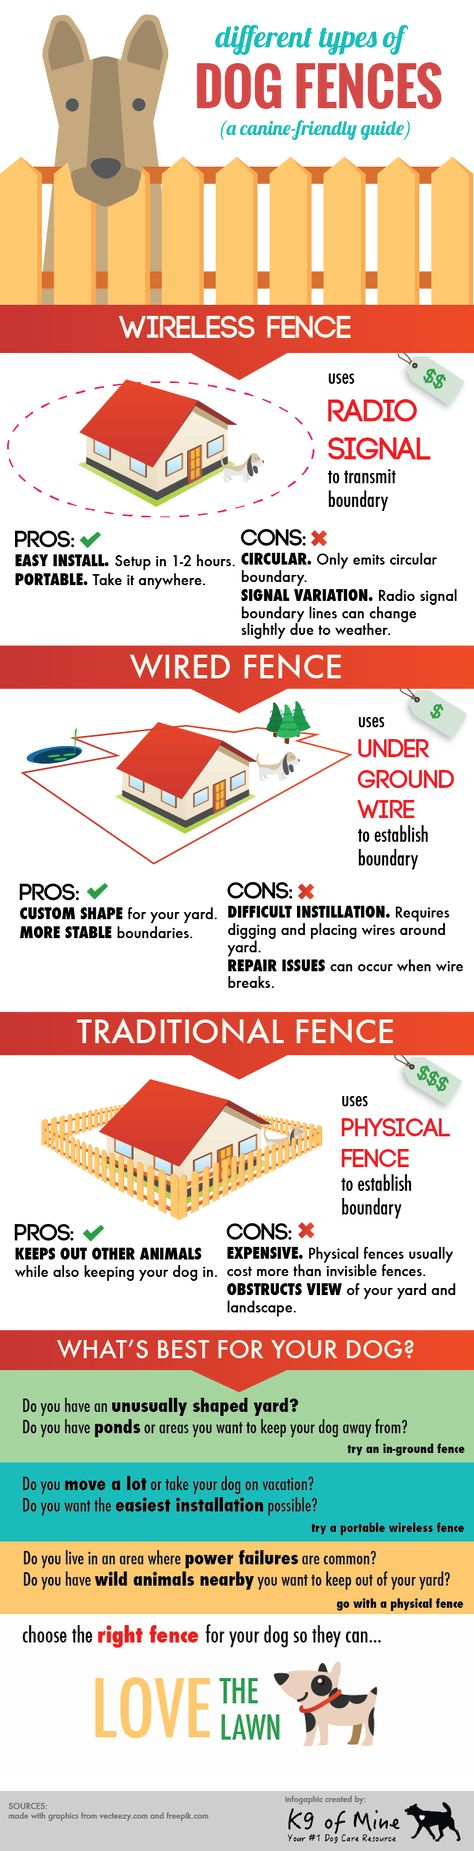 How To Keep Wild Animals Out Of Your Yard Part - 38: Best 25+ Invisible Fence Ideas On Pinterest | Cheap Dog Kennels, Cheap  Fence Ideas And Fencing